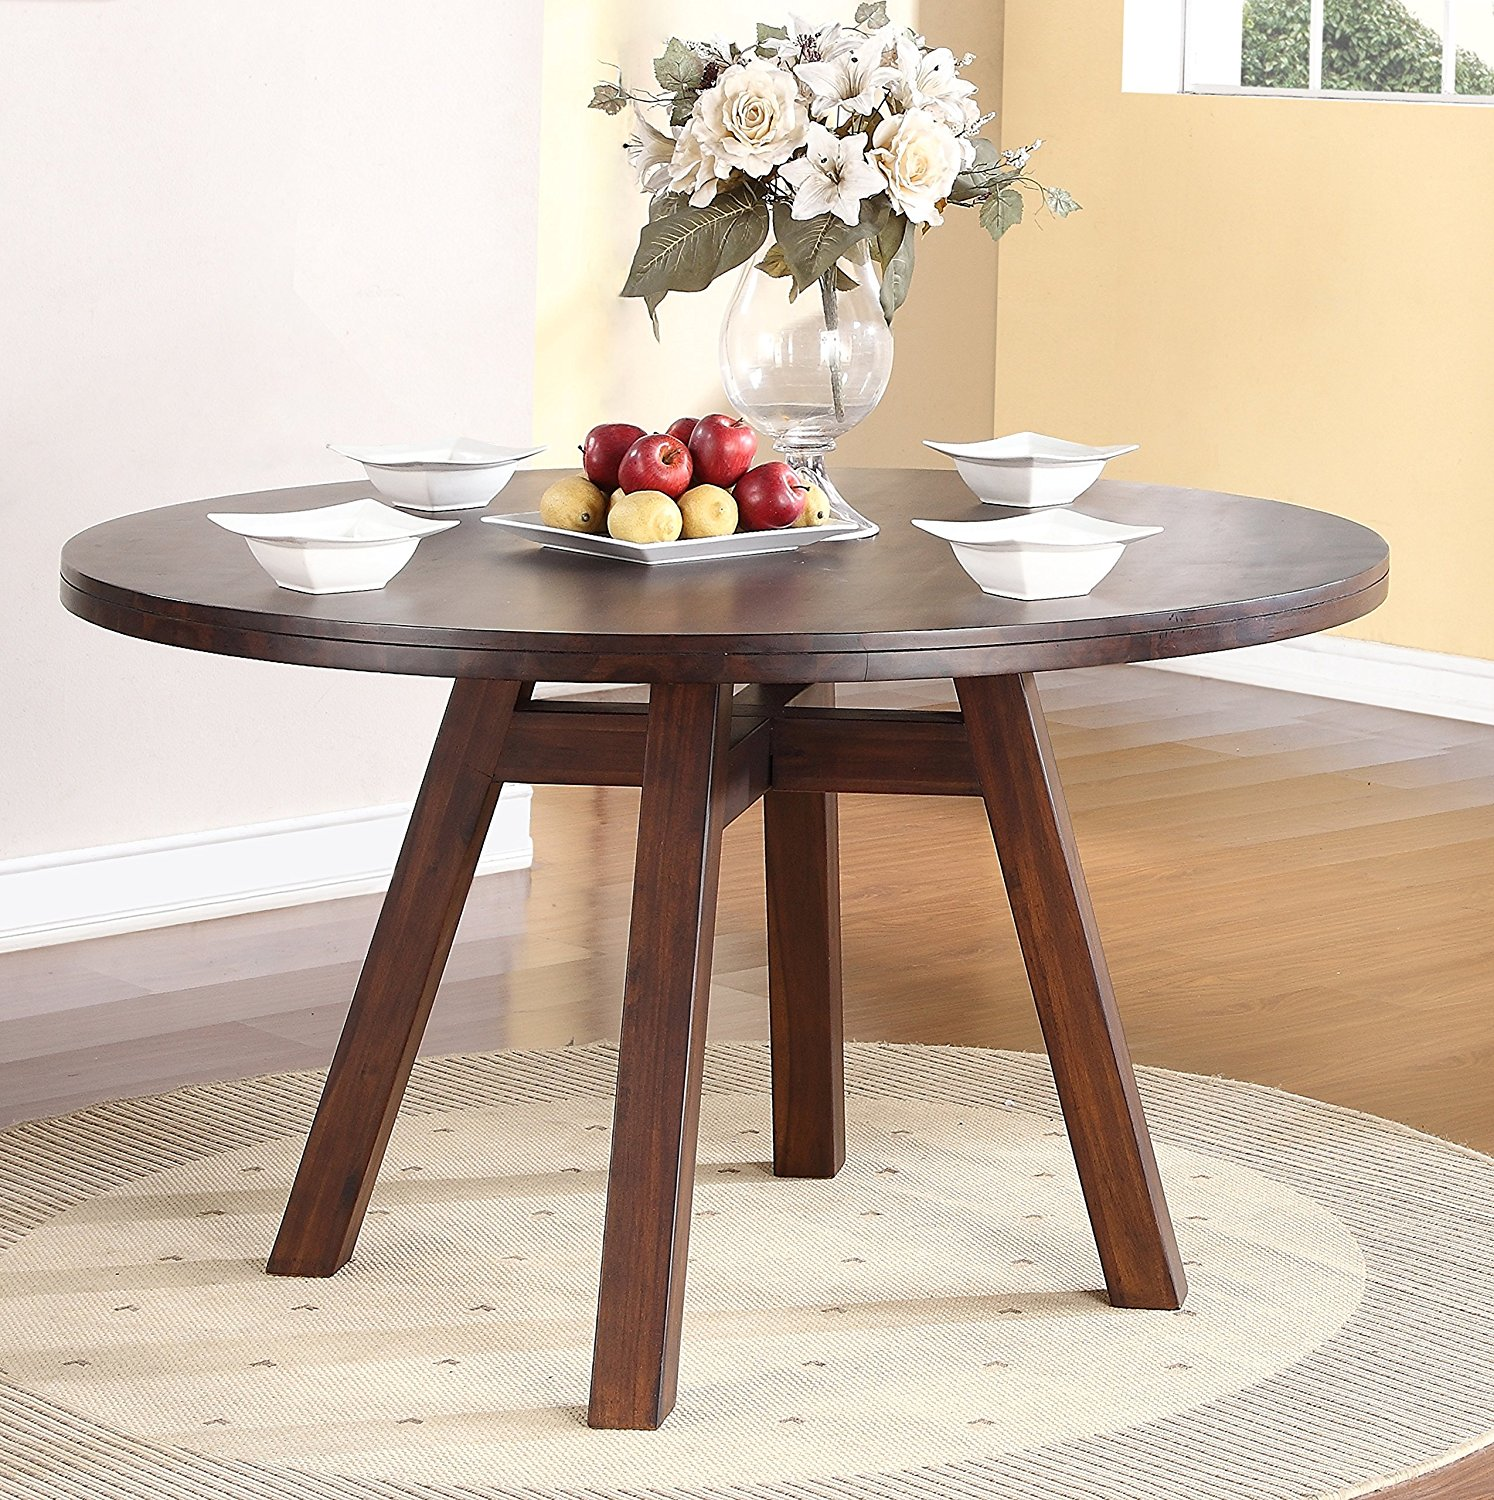 portland solid wood round dining table in walnut shop for affordable home furniture decor. Black Bedroom Furniture Sets. Home Design Ideas